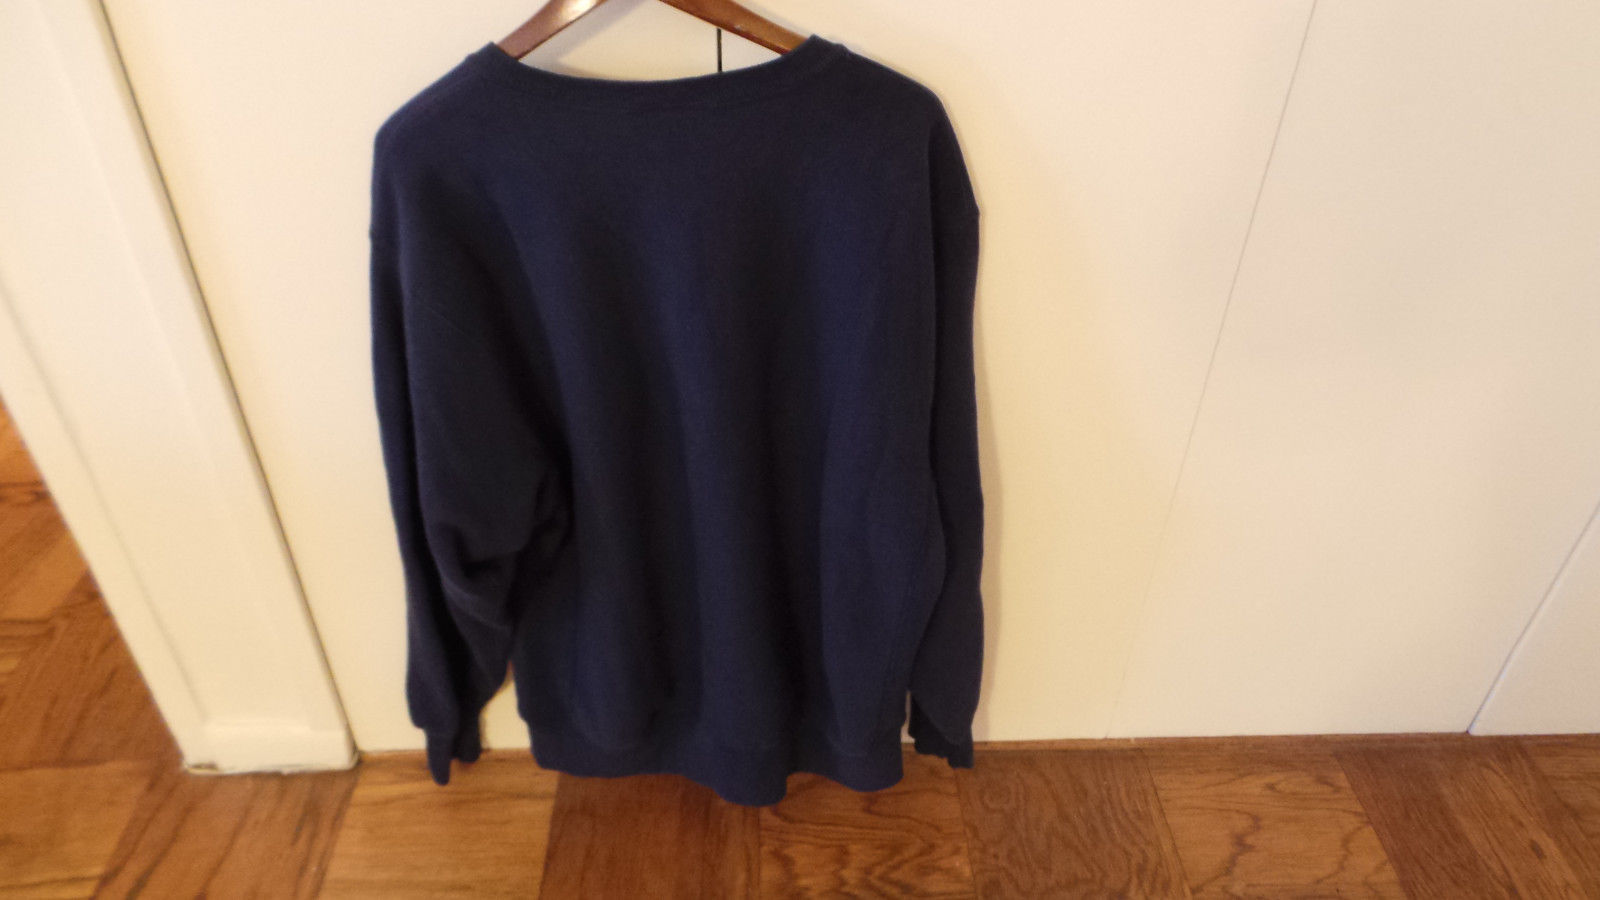 Putnam Sweatshirt in Navy Color w Bold Letters Size XL Made in USA by Lee VG+ image 4